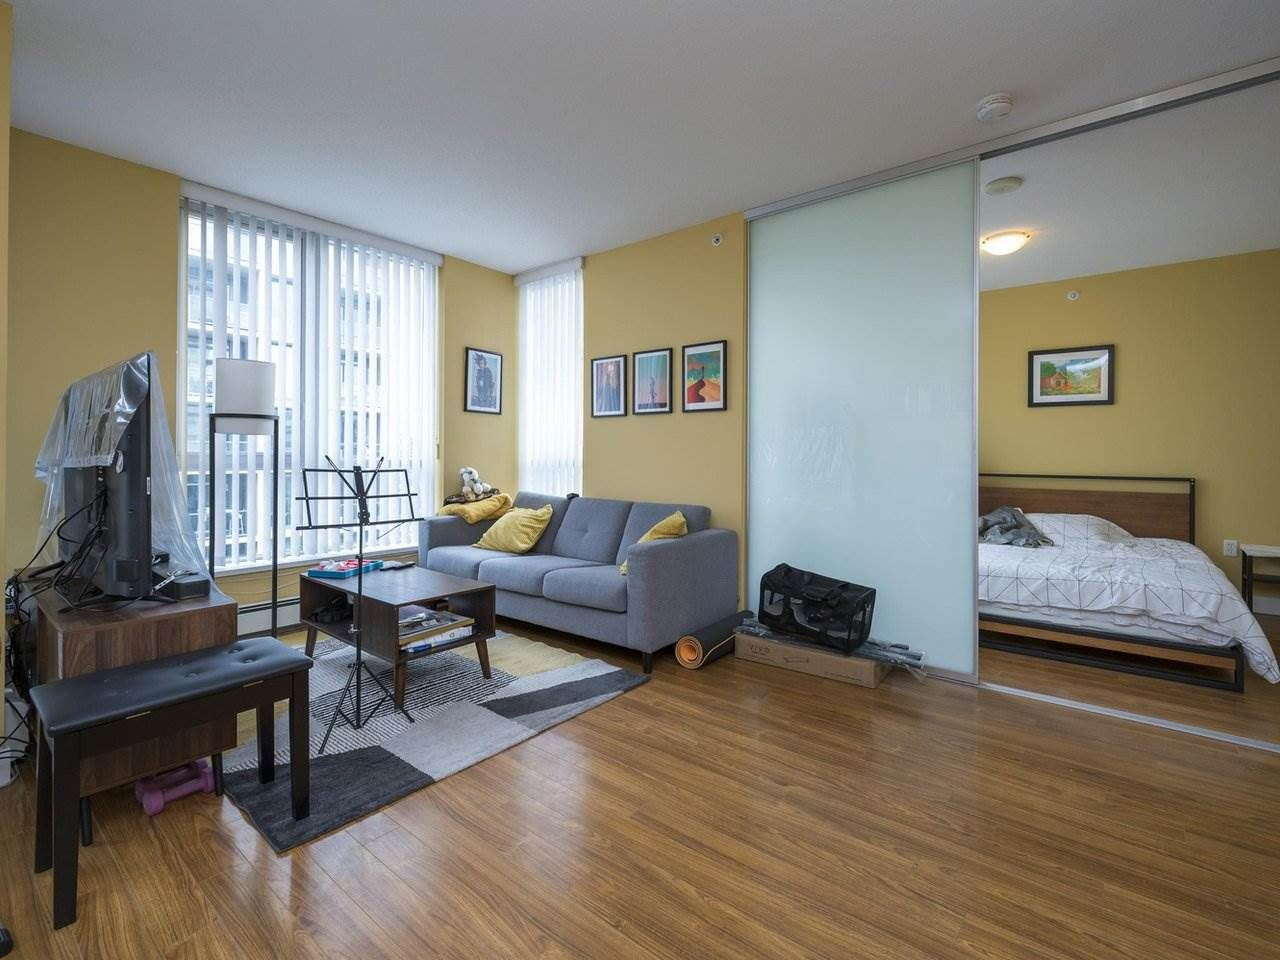 """Main Photo: 1005 1833 CROWE Street in Vancouver: False Creek Condo for sale in """"THE FOUNDRY"""" (Vancouver West)  : MLS®# R2555513"""